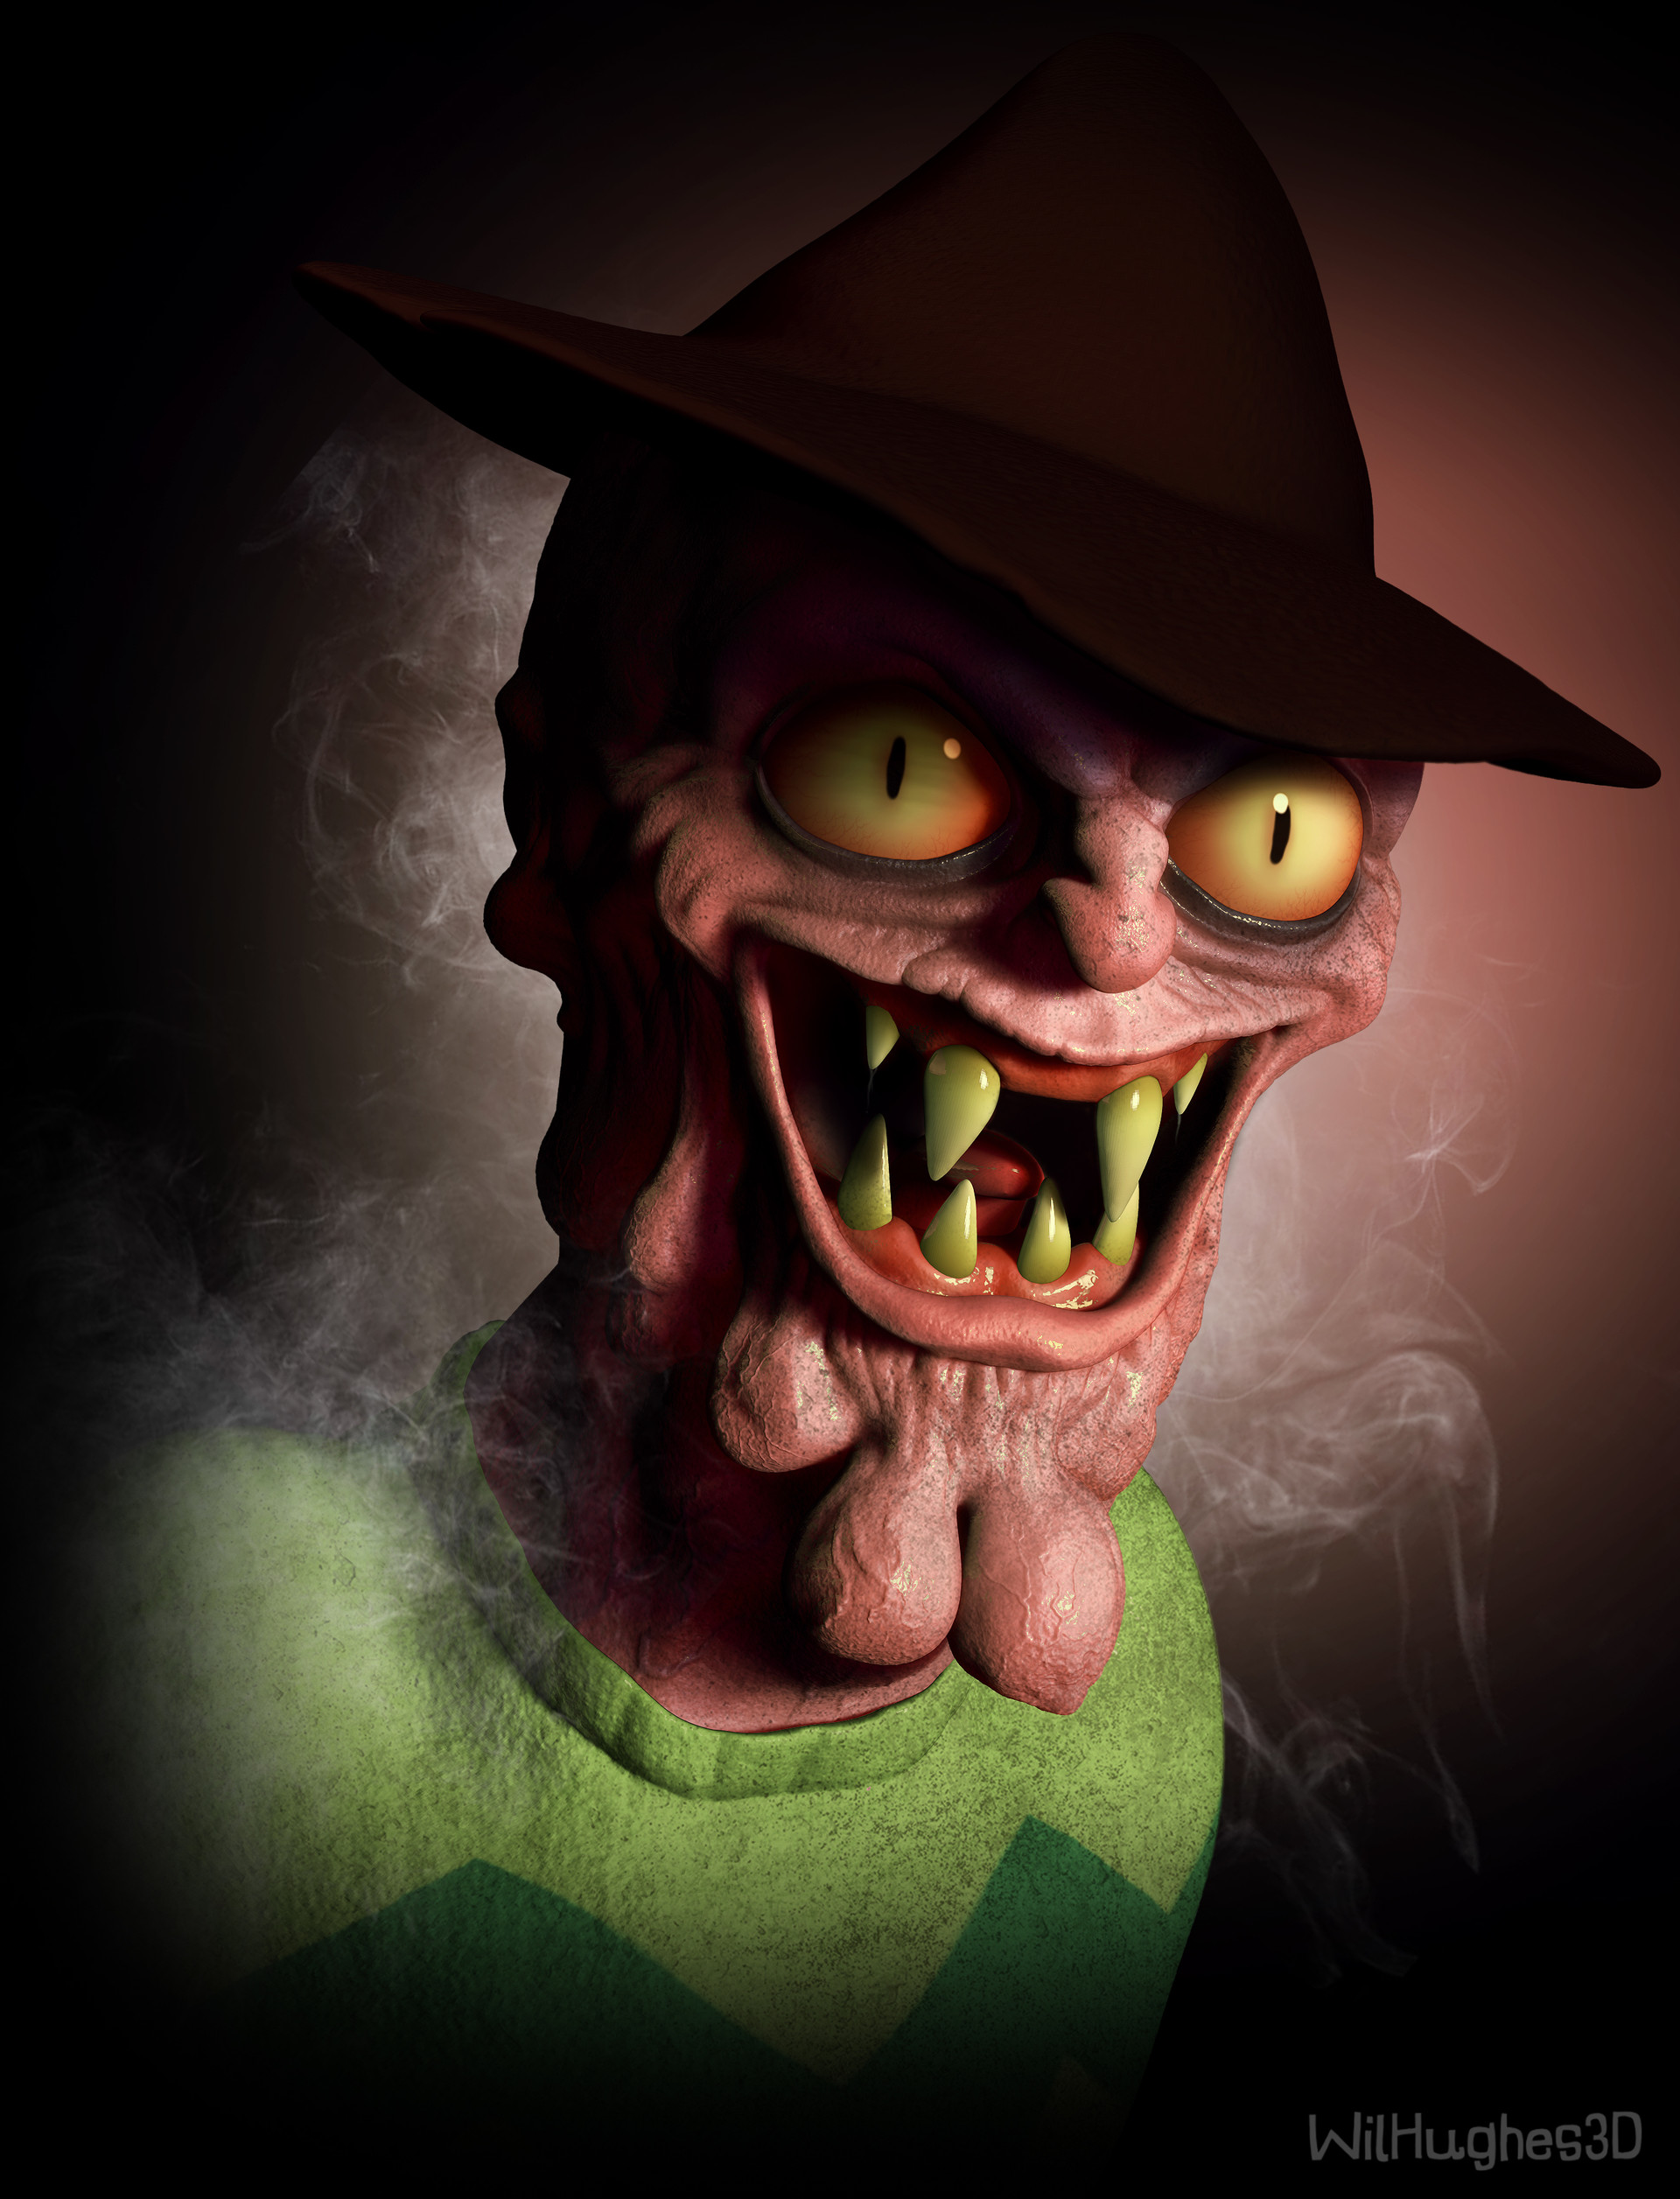 Wil hughes scary terry